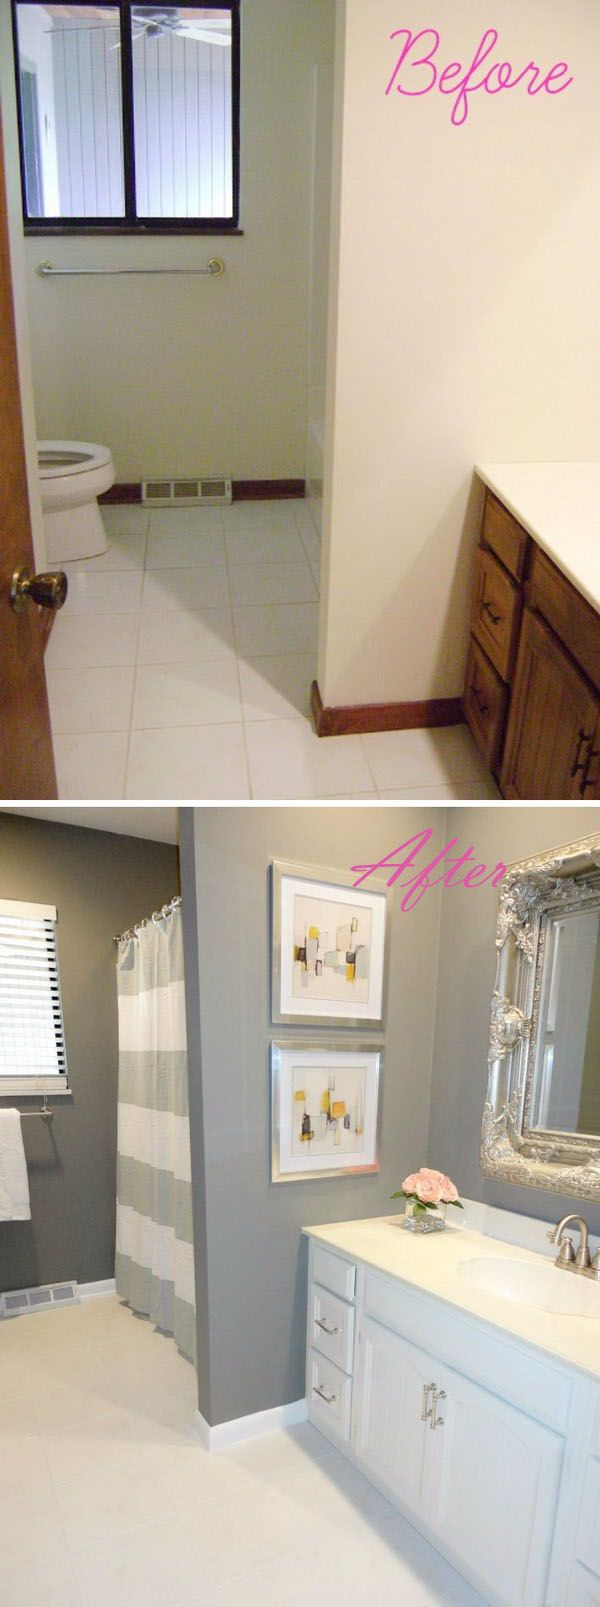 best 25 diy bathroom ideas ideas on pinterest bathroom storage diy home storage ideas and purple small bathrooms